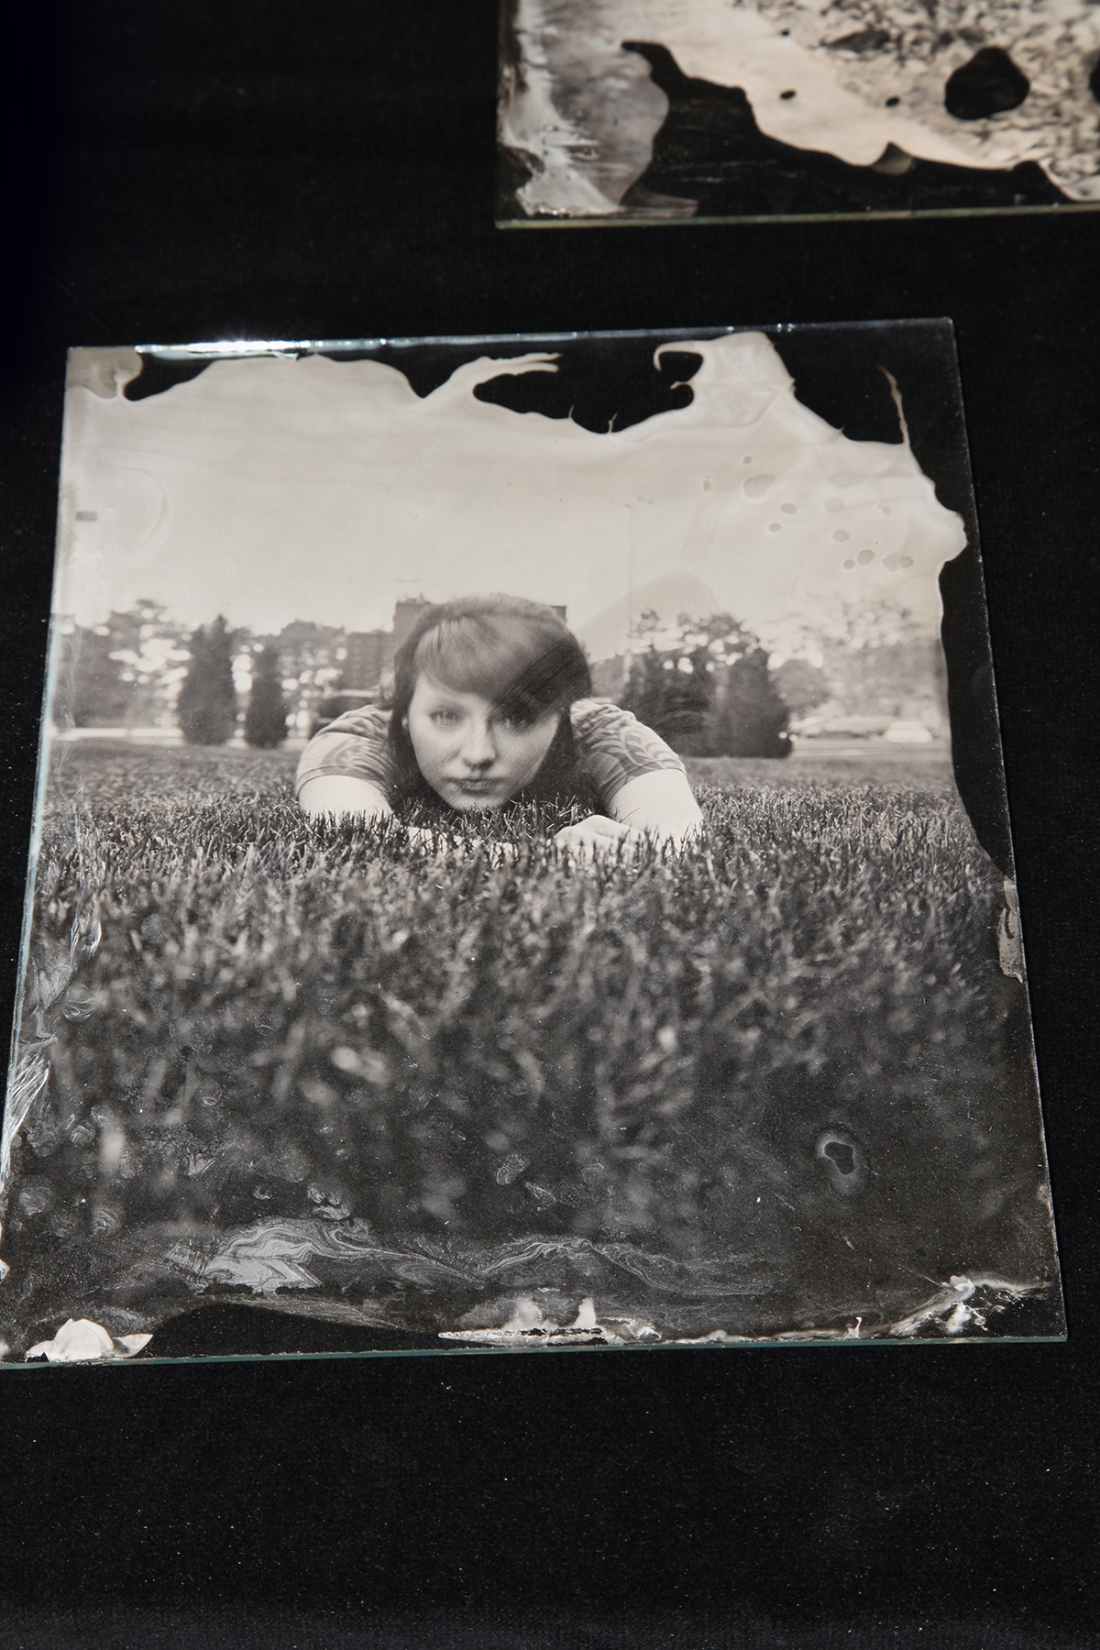 8x10 glass plate negative by Josh Torres